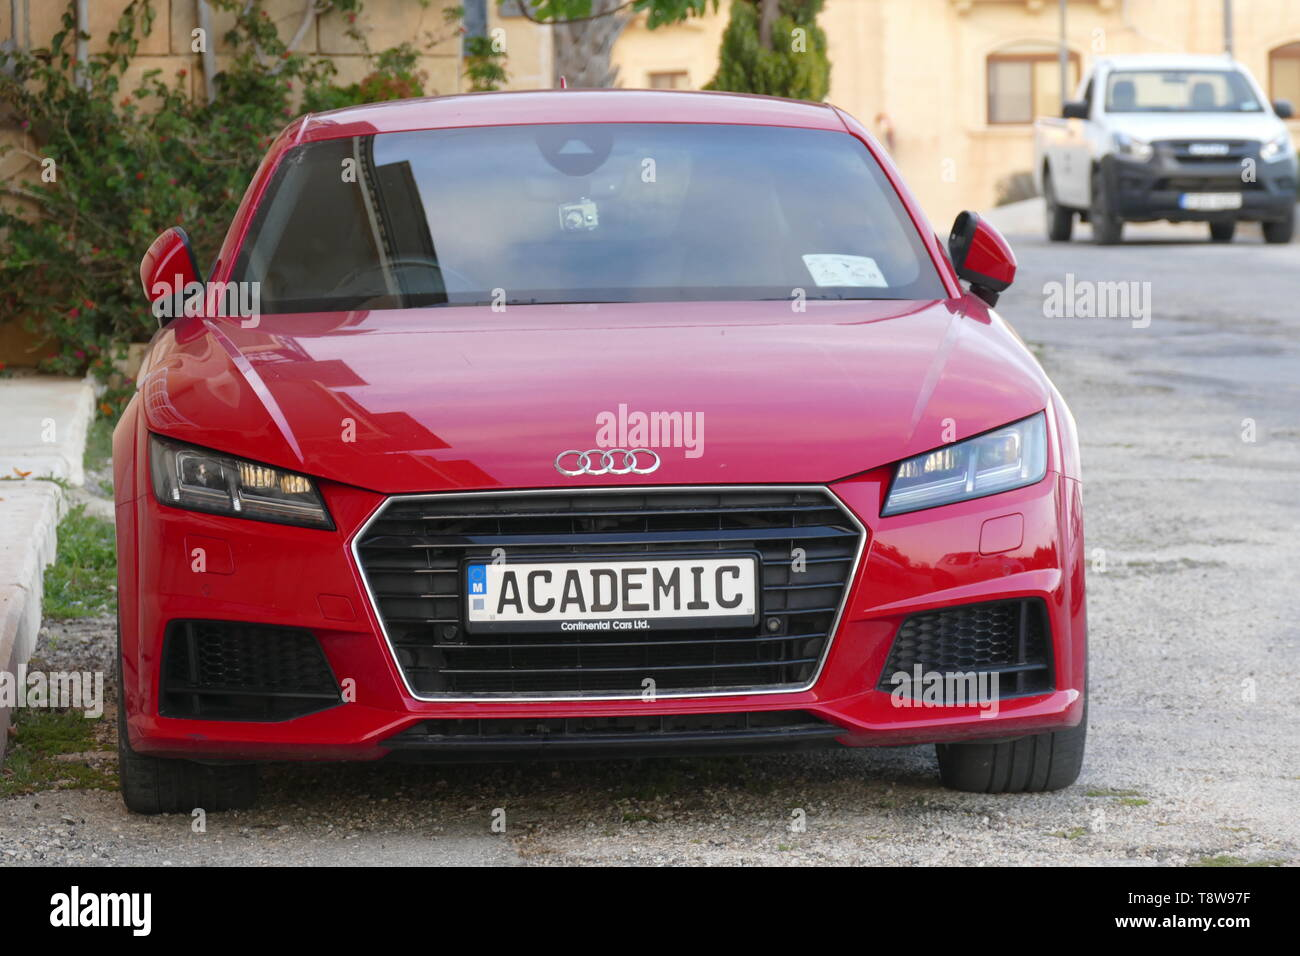 A car with an unusual number plate pictured on the island of Gozo in Malta. Picture by Adam Alexander - Stock Image